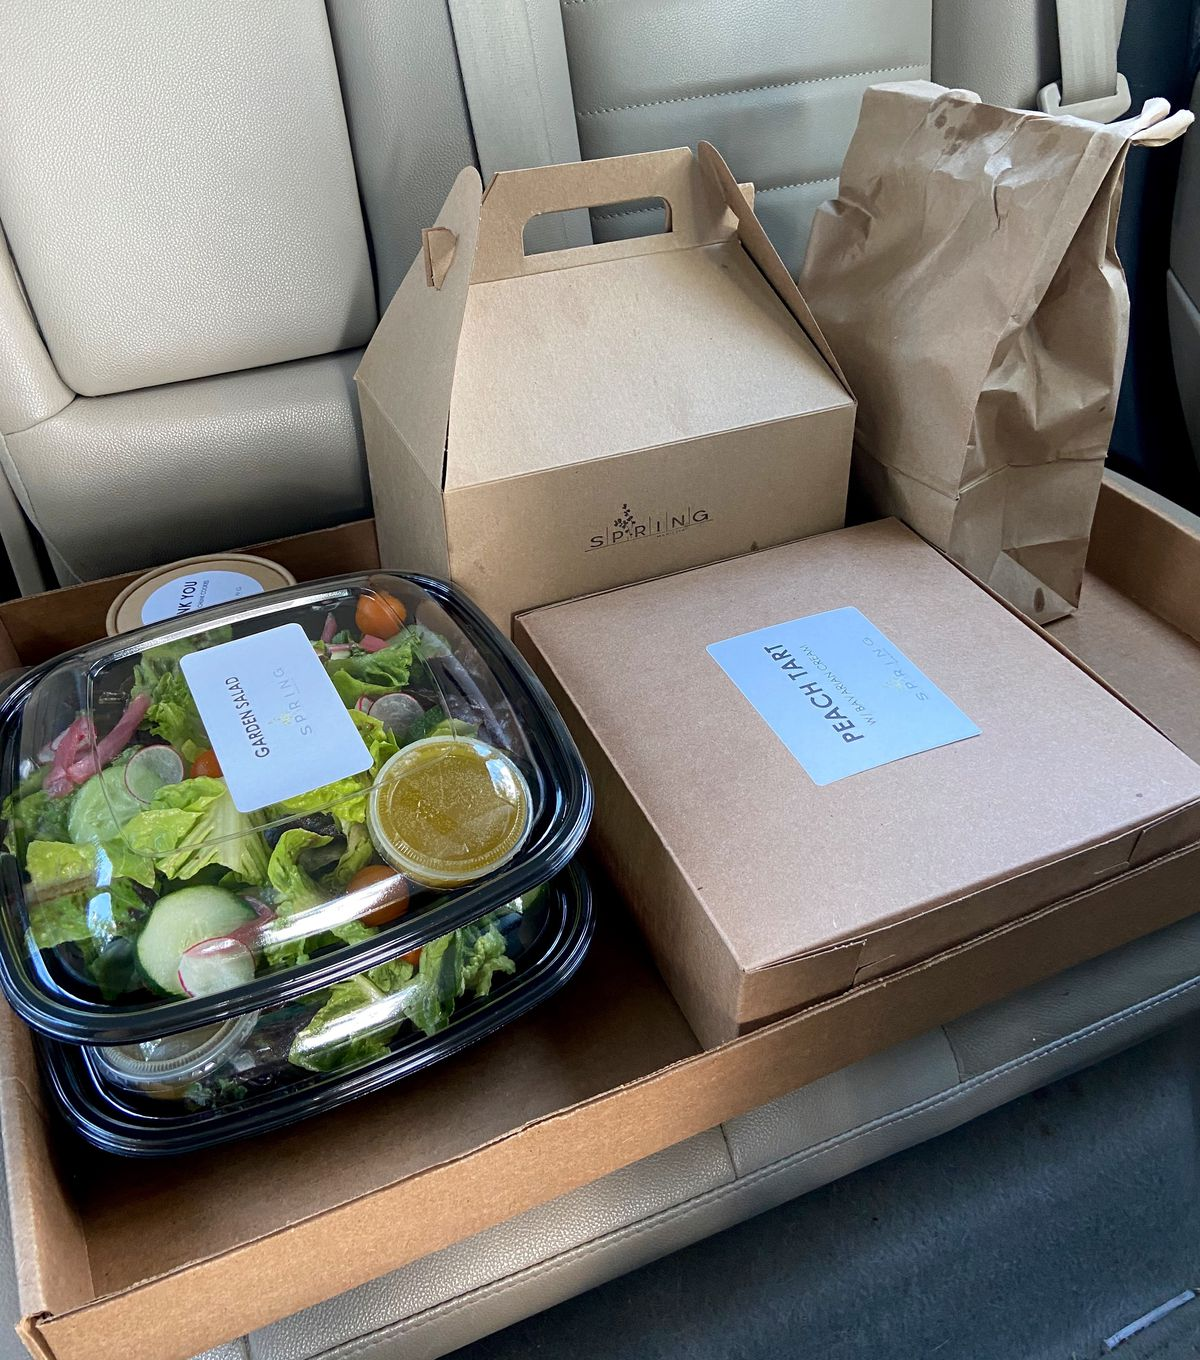 Takeout food boxed up and in the back seat of a car from Spring restaurant in Marietta, GA